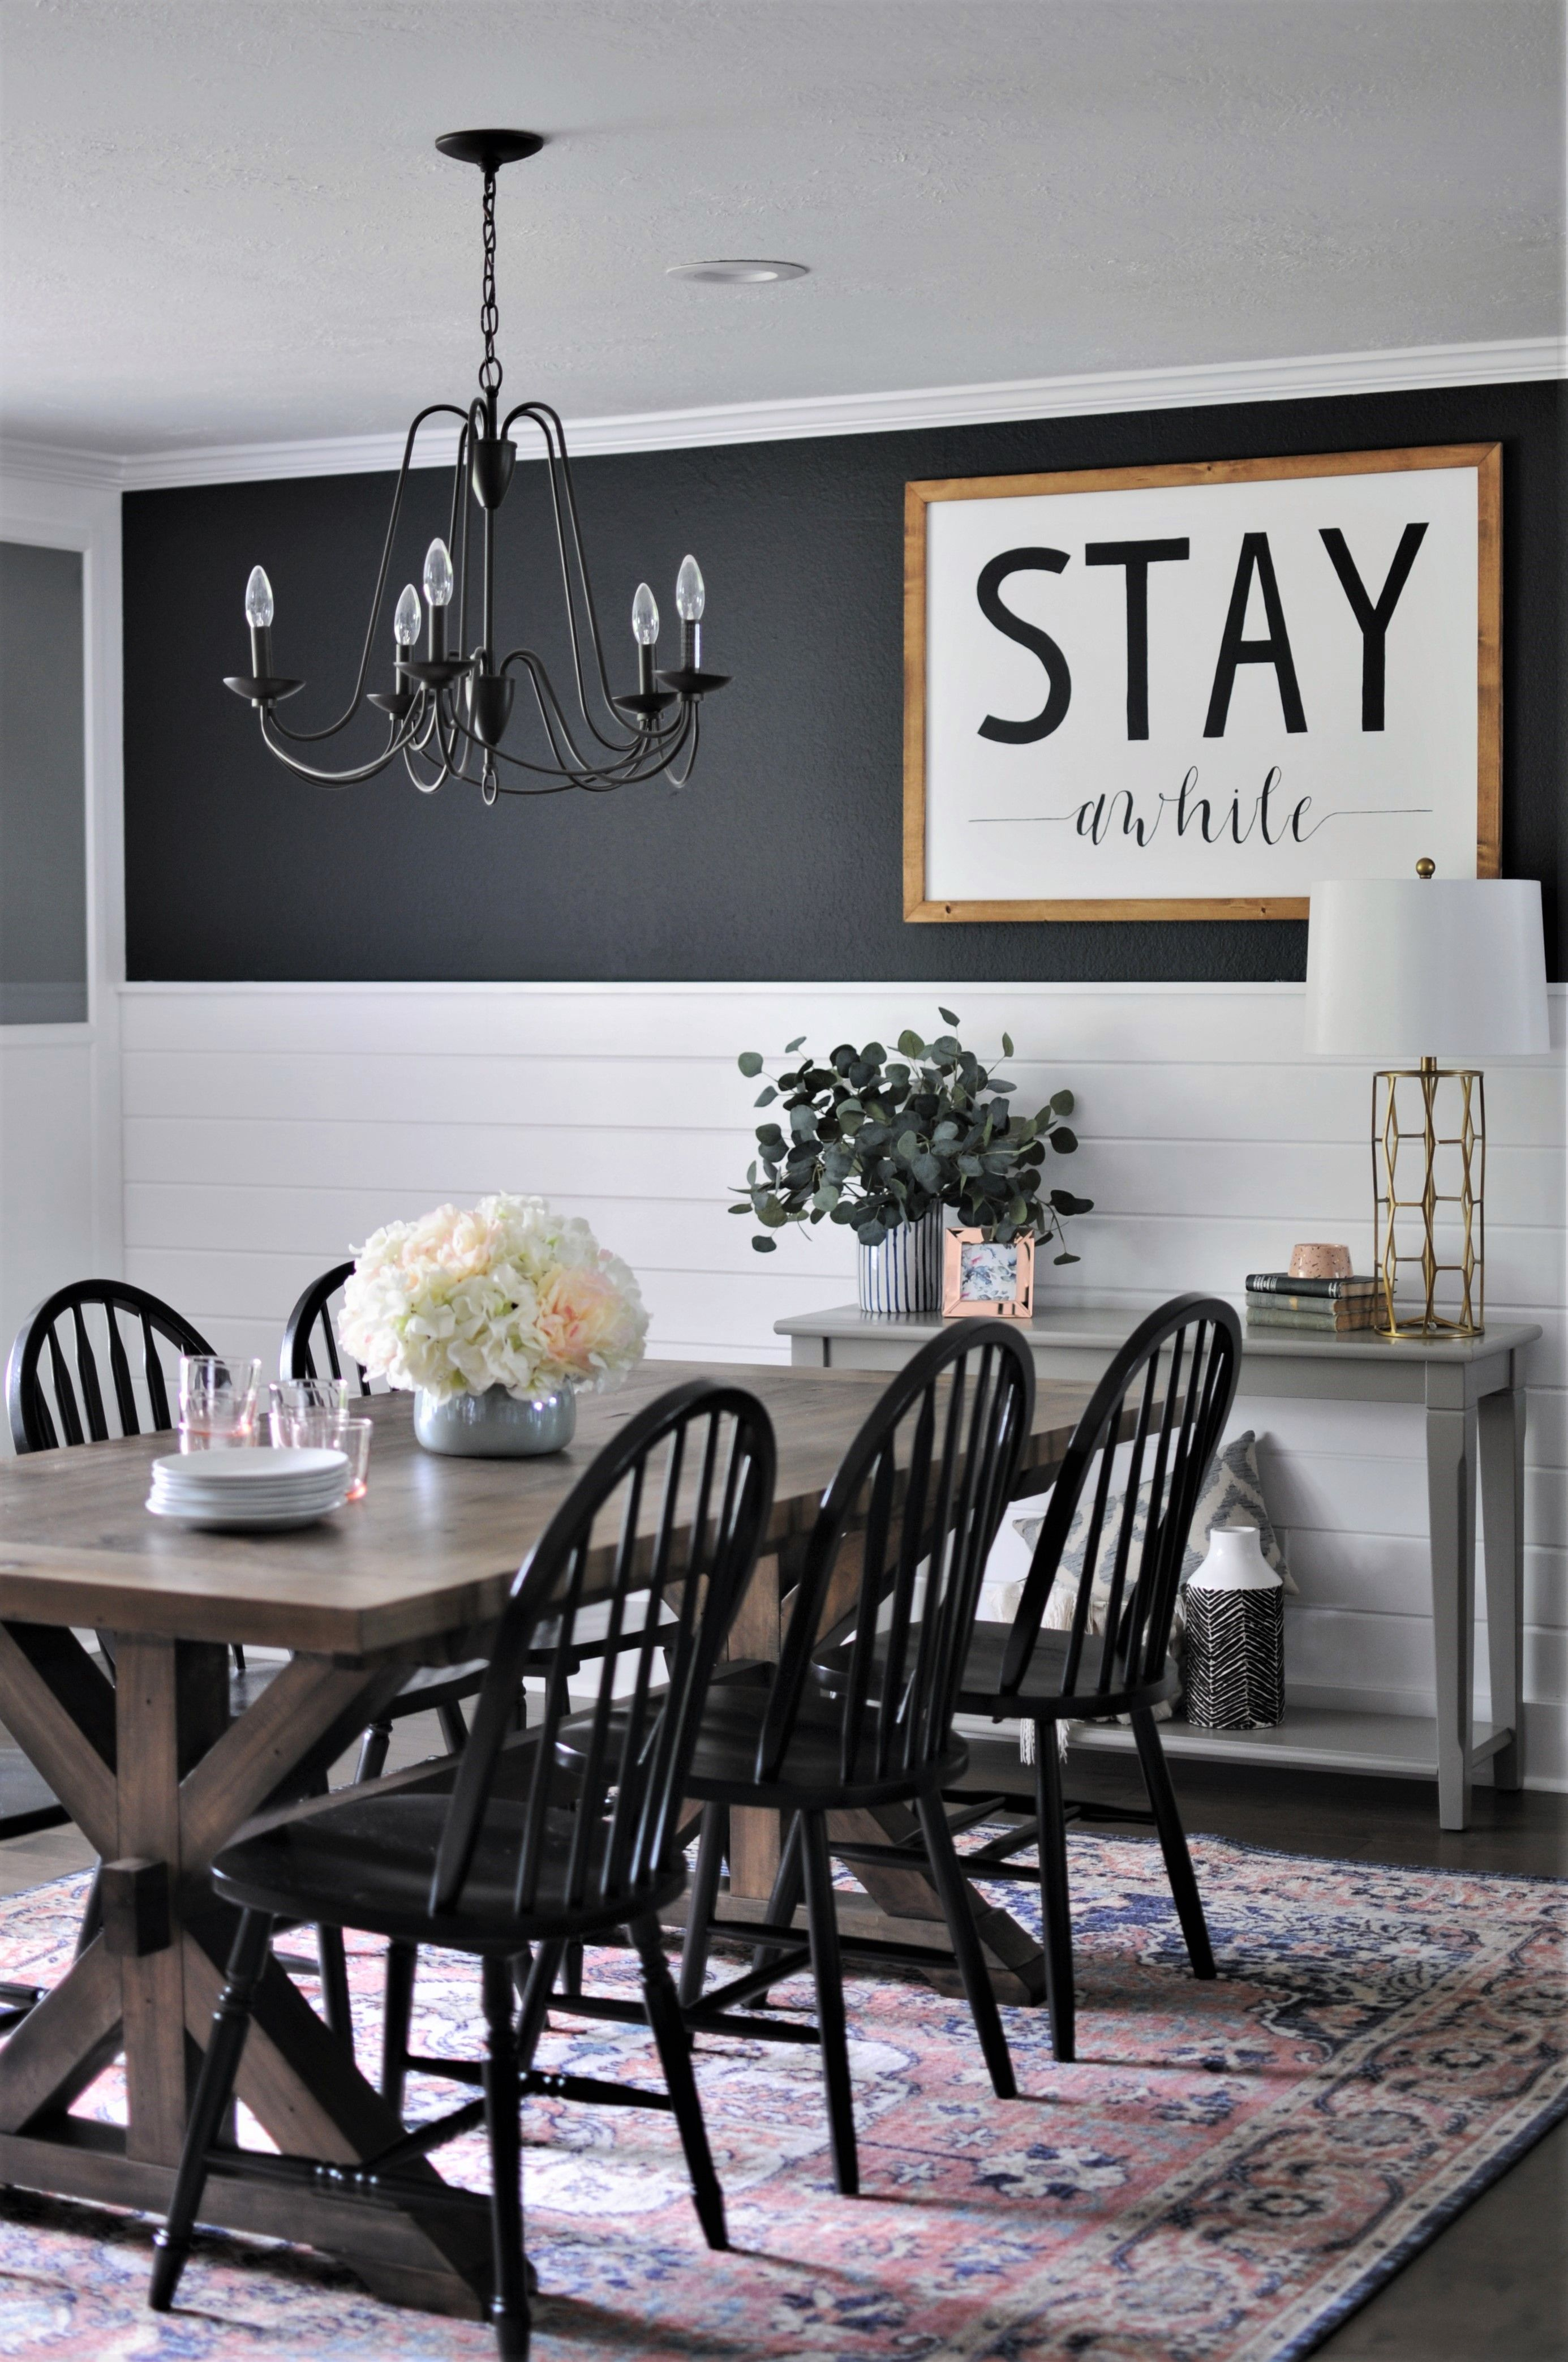 Blush & Moody Dining Room Makeover - ORC Week 6 - The REVEAL images